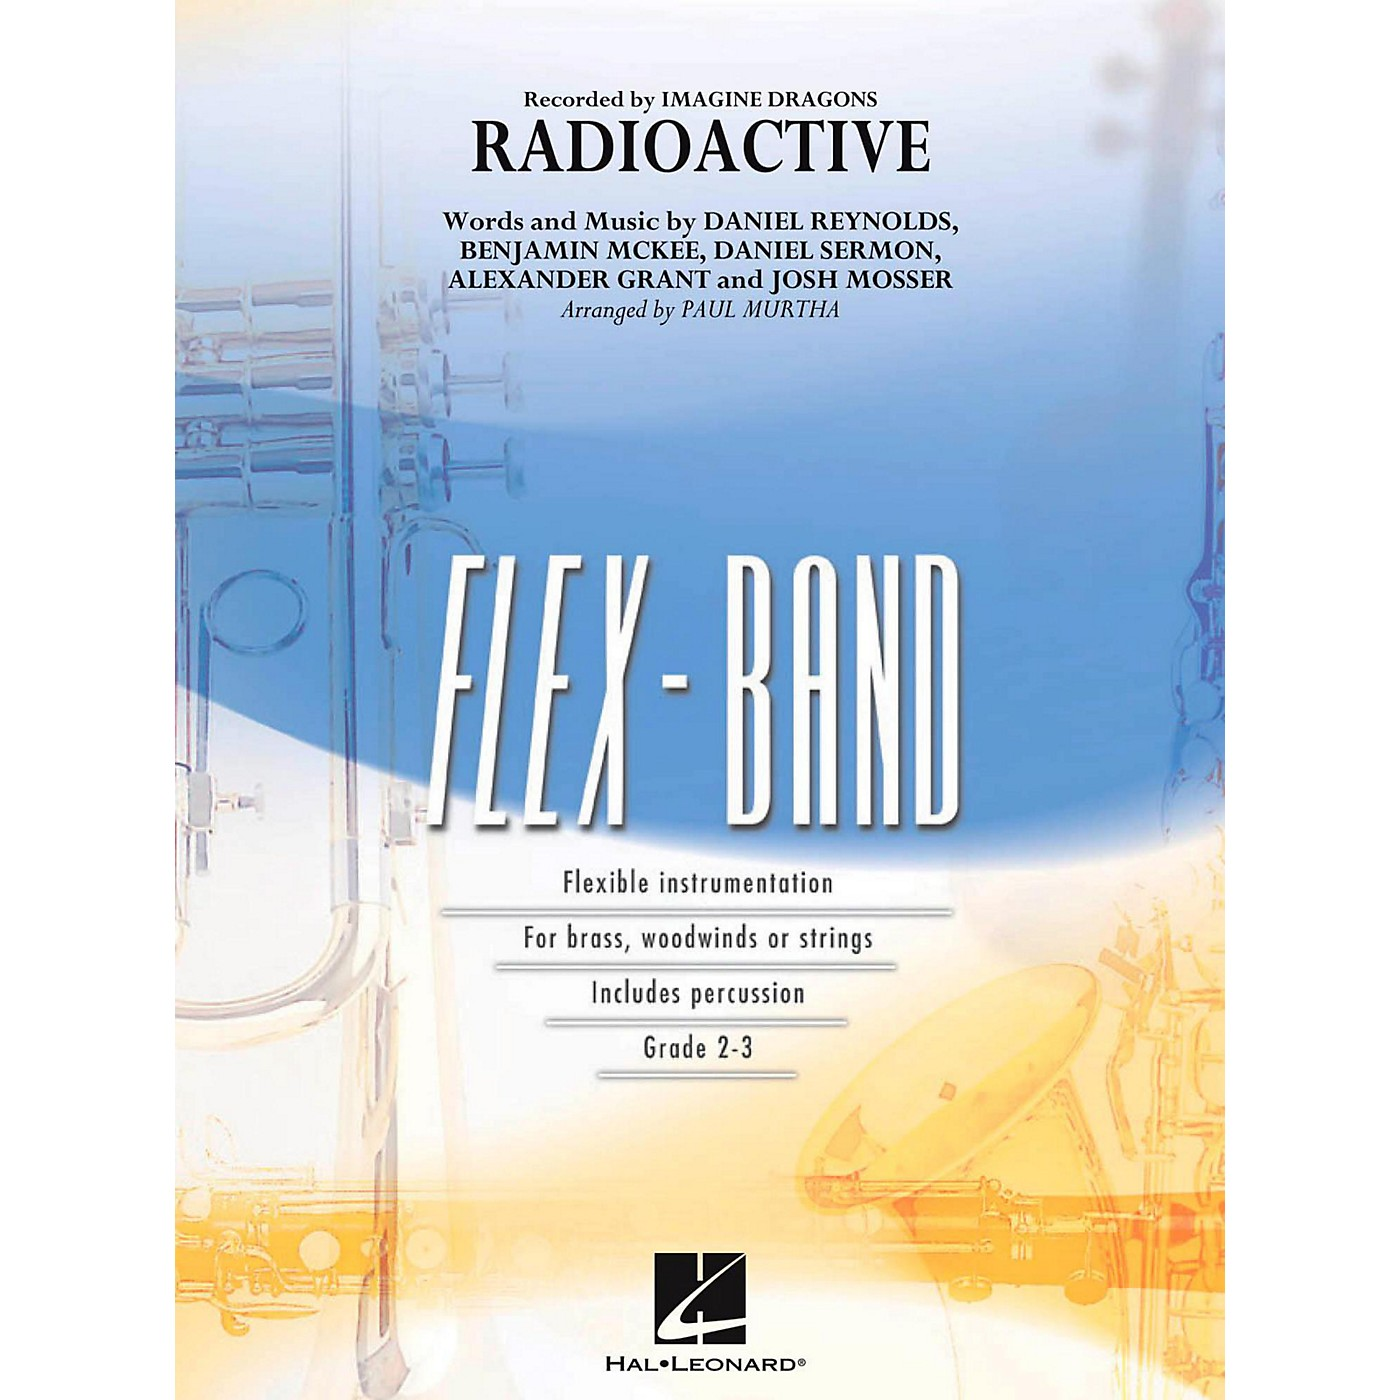 Hal Leonard Radioactive - FlexBand Concert Band Series Level 2 - 3 thumbnail